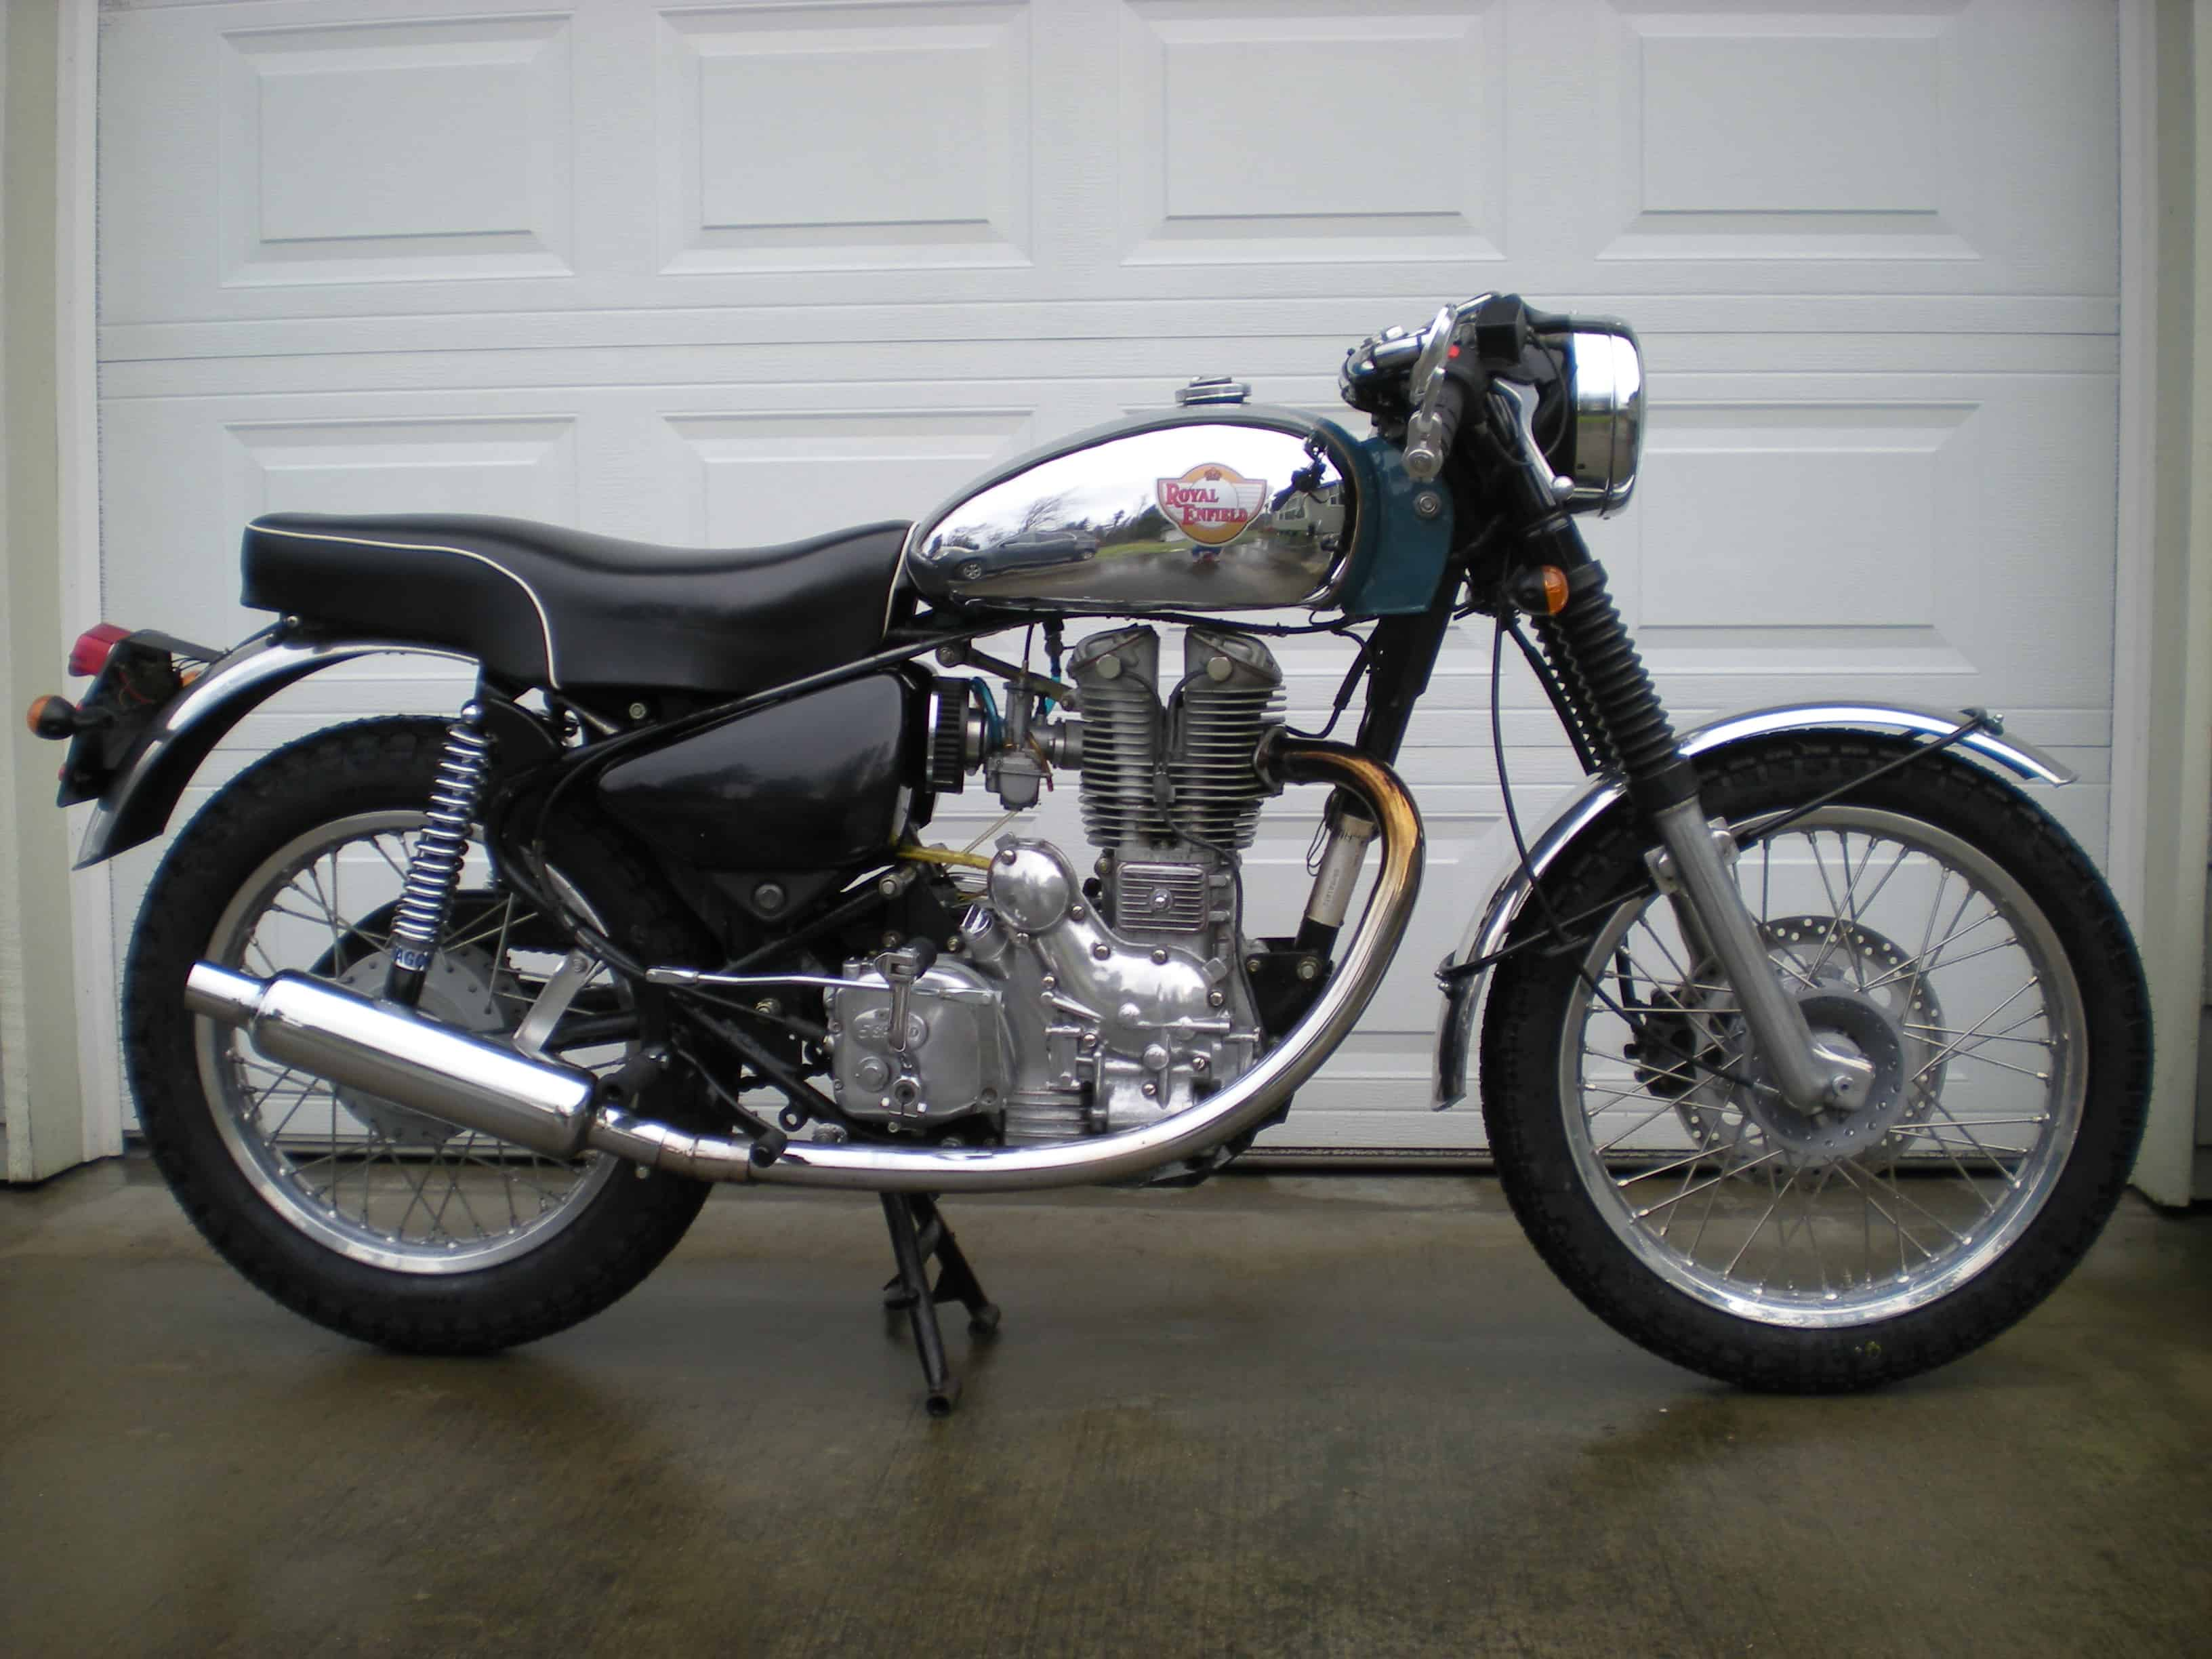 Jrc Pwk Carb Instructions Engineering Inc Wiring Diagram Also Royal Enfield Bullet 500 Further Avl Motor 32mm